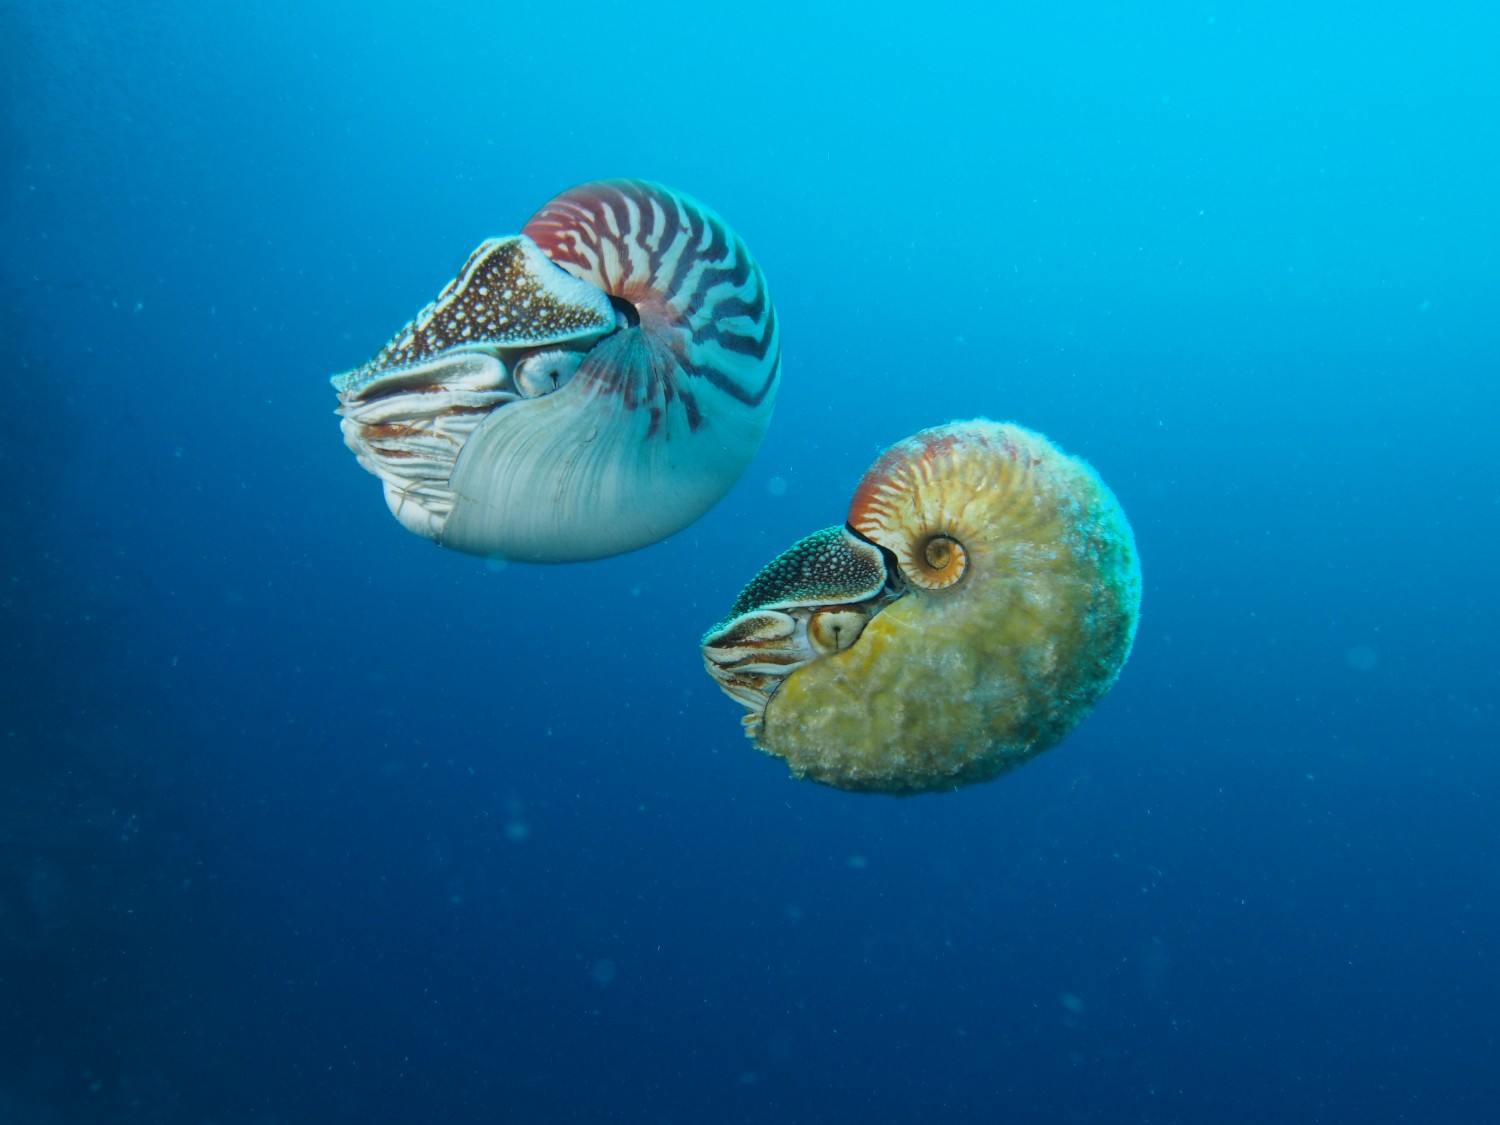 Nautilus and Allonautilus